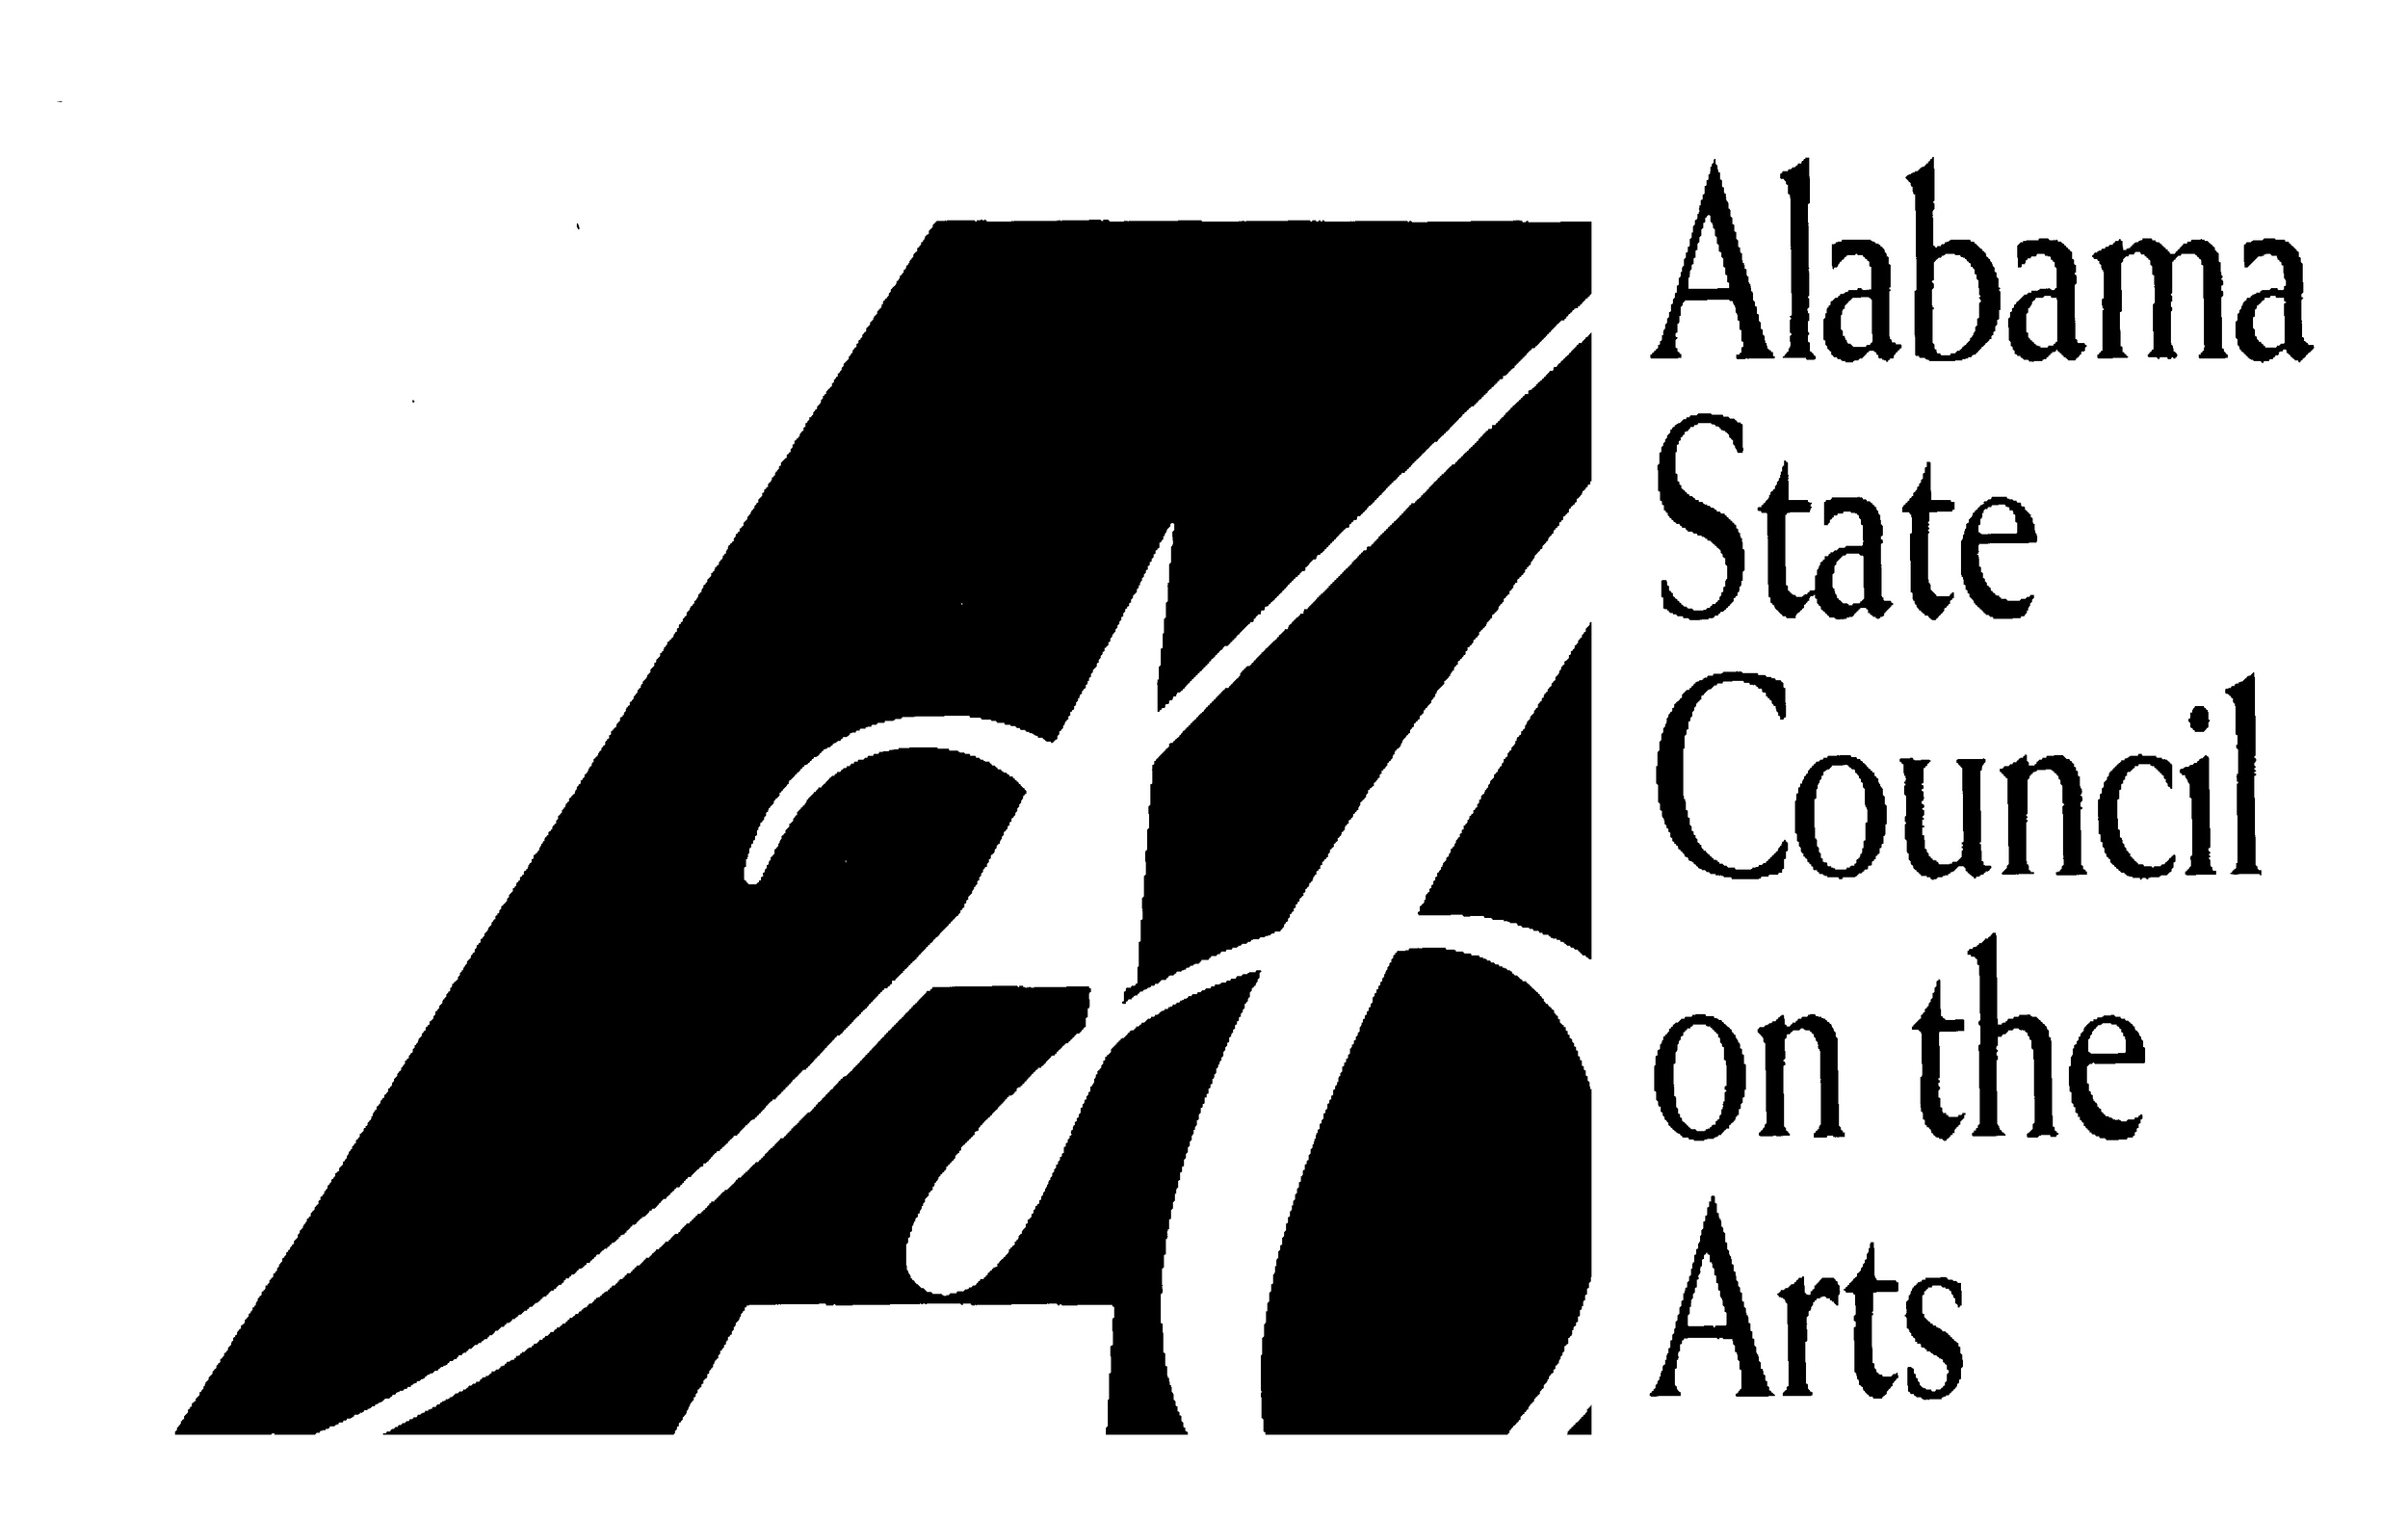 Alabama_State_Council_on_the_Arts.jpg